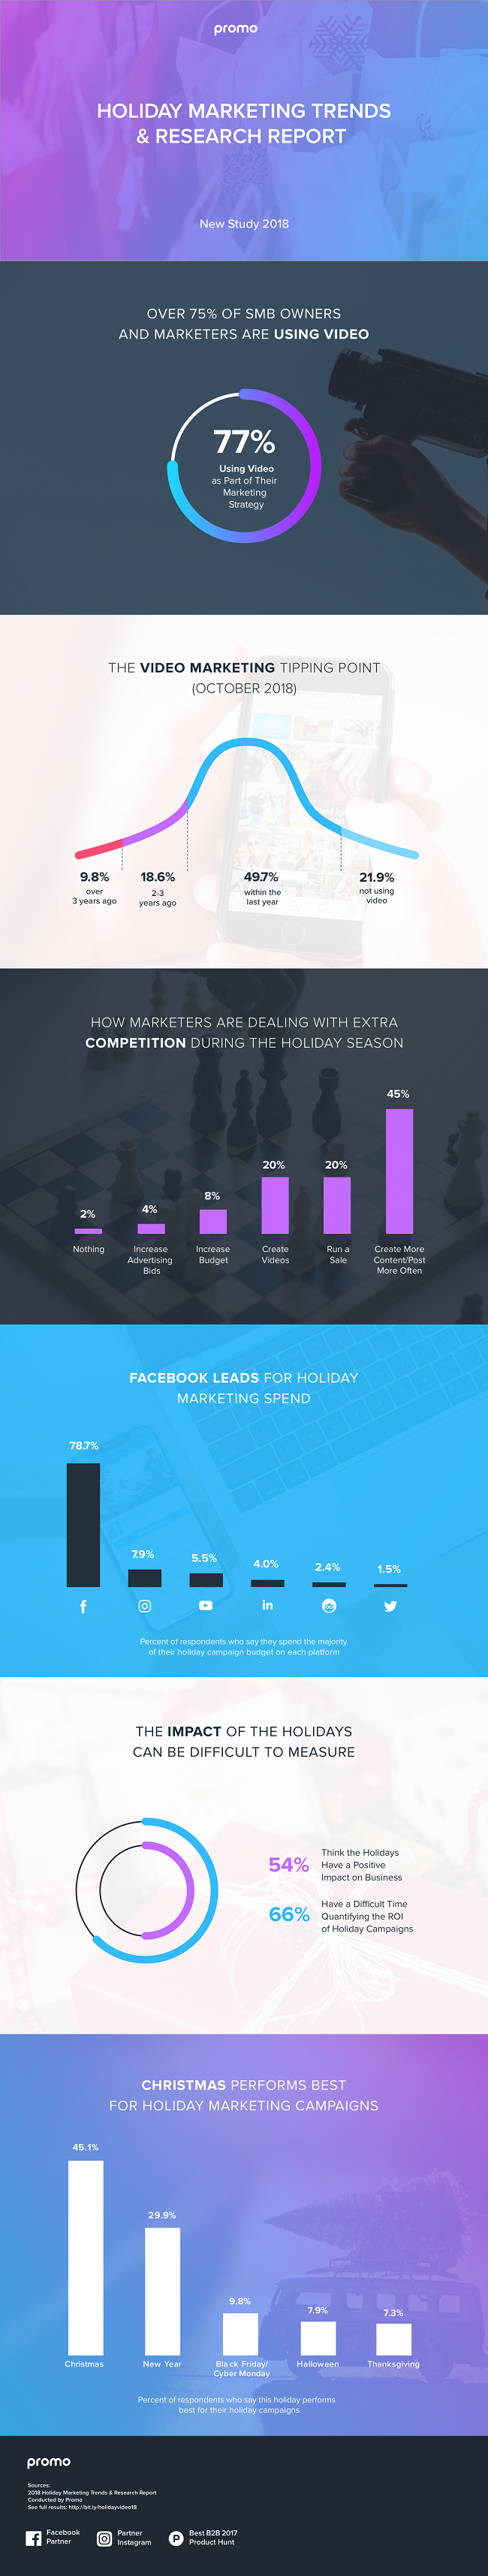 Infographic looks at key marketing trends for the 2018 holiday season